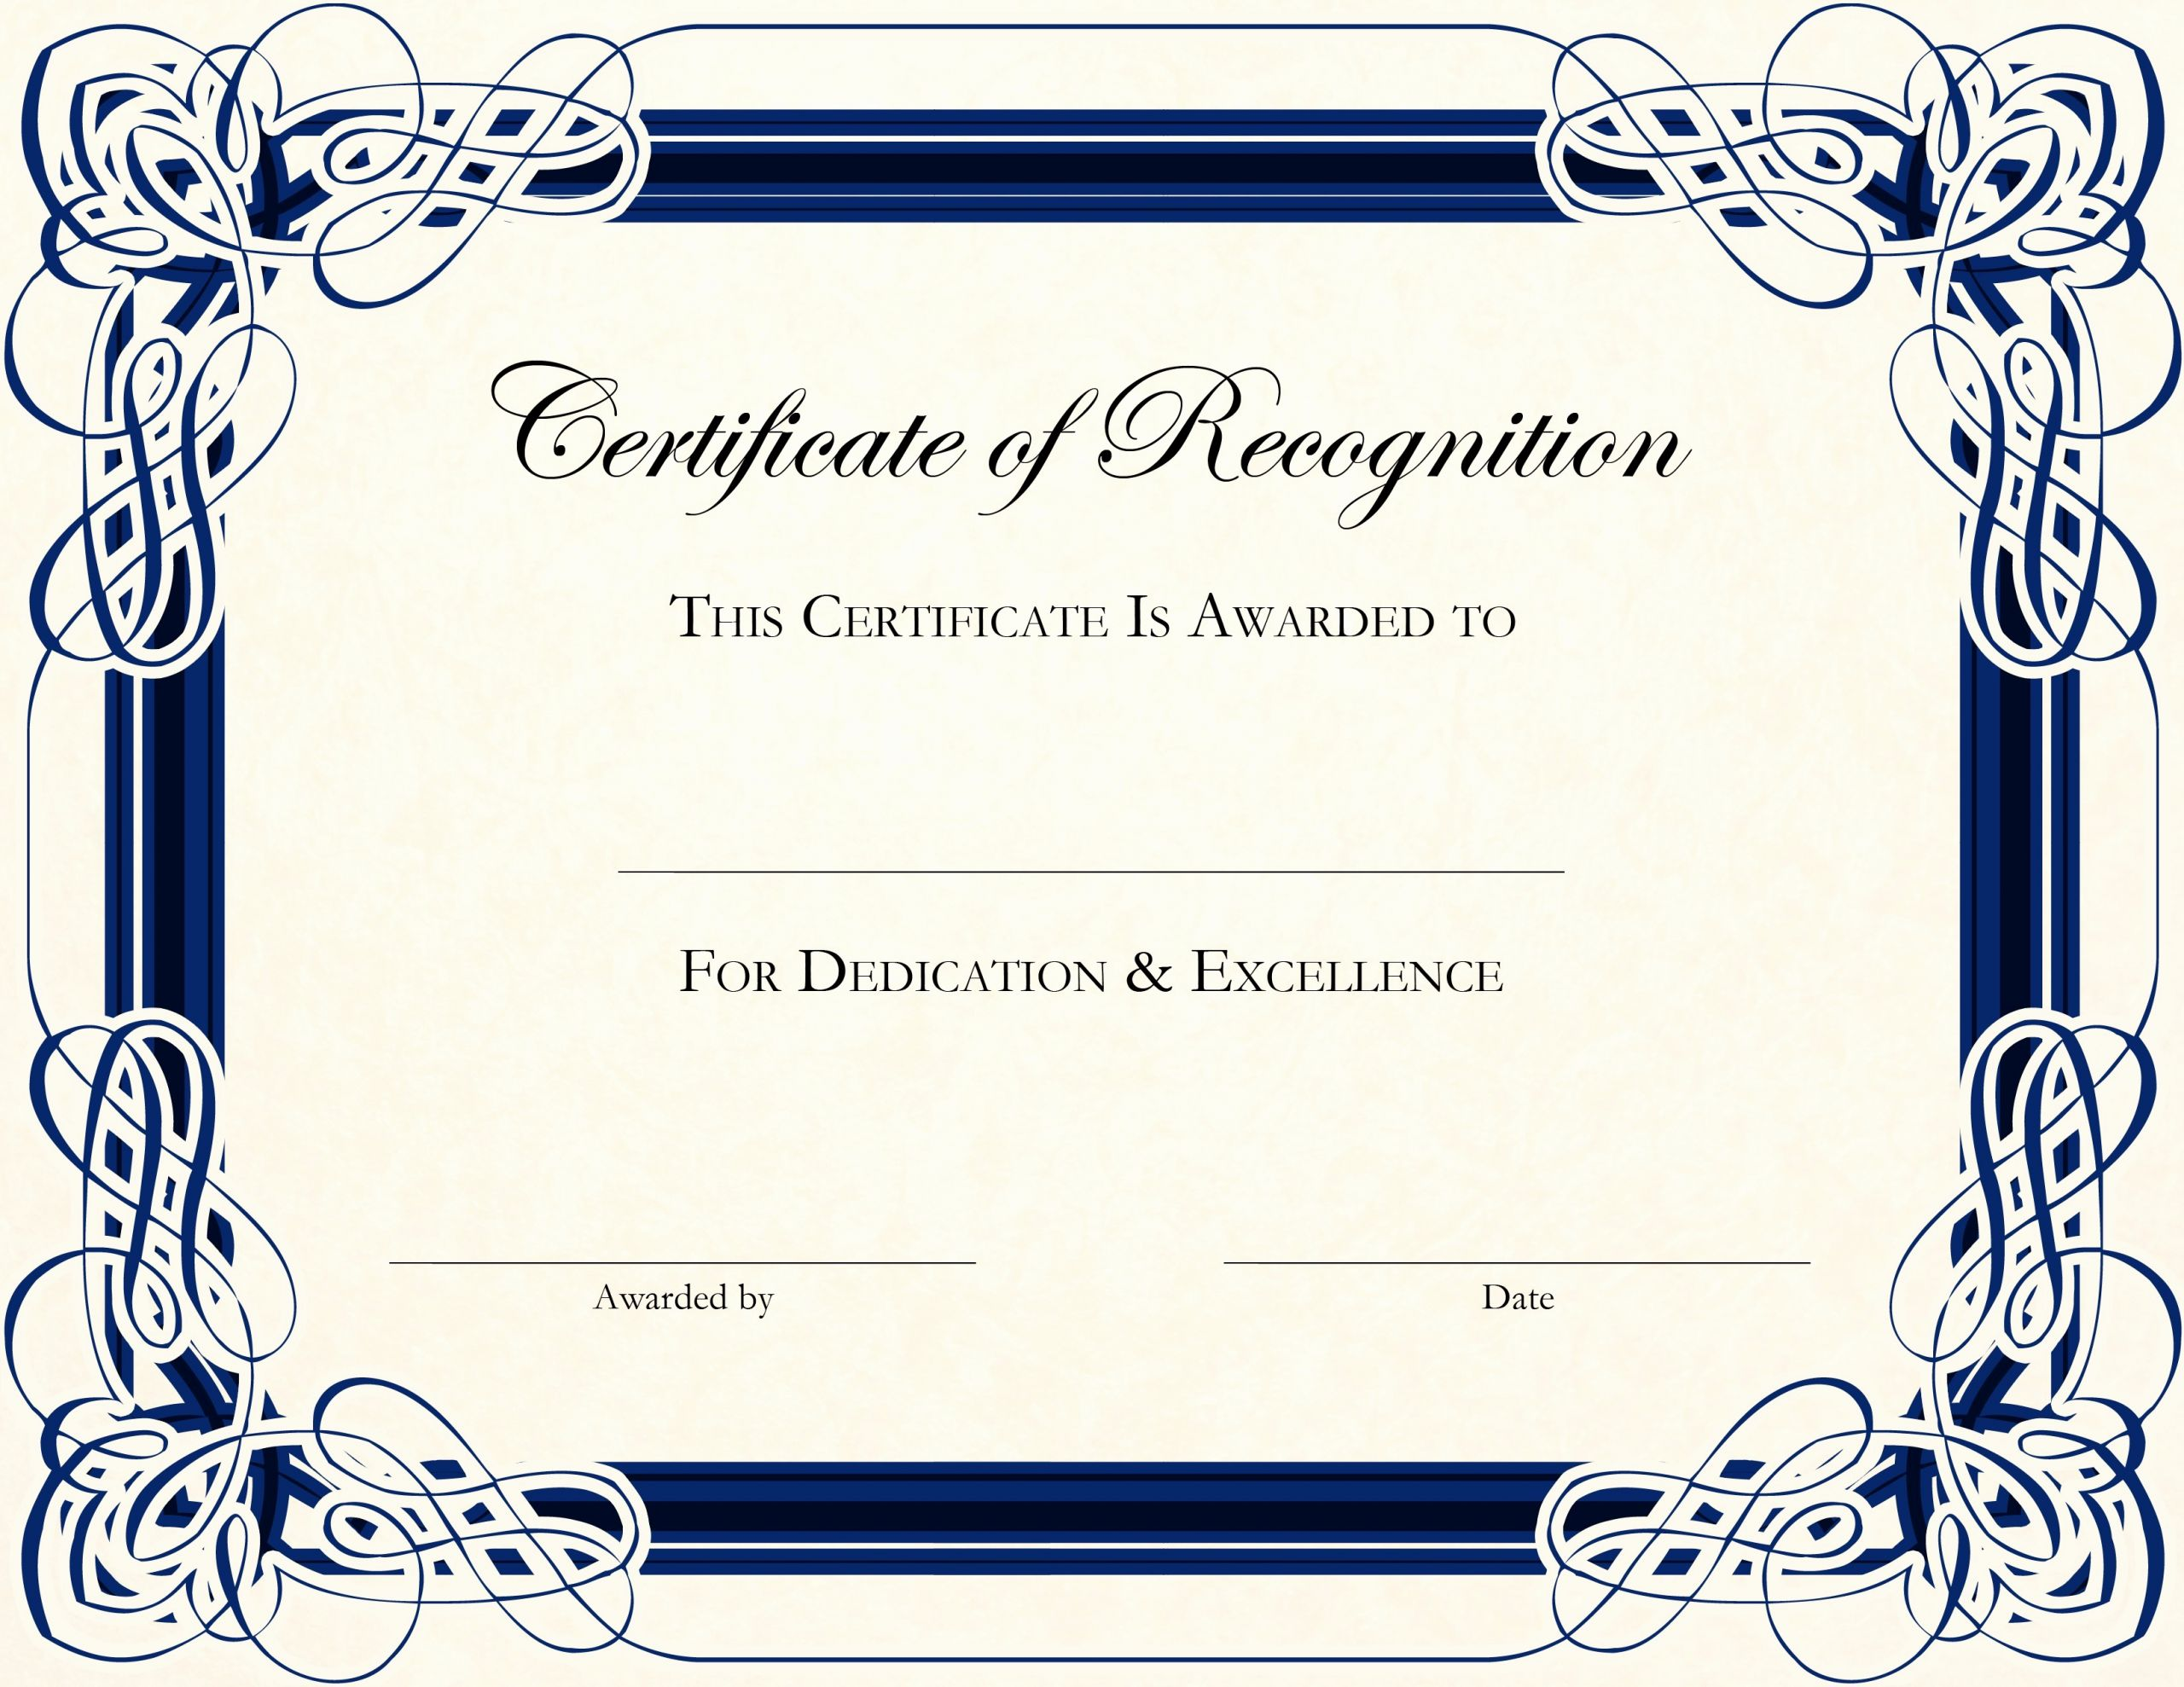 Funny Gift Certificate Template Luxury Funny Certificate Templates for Word